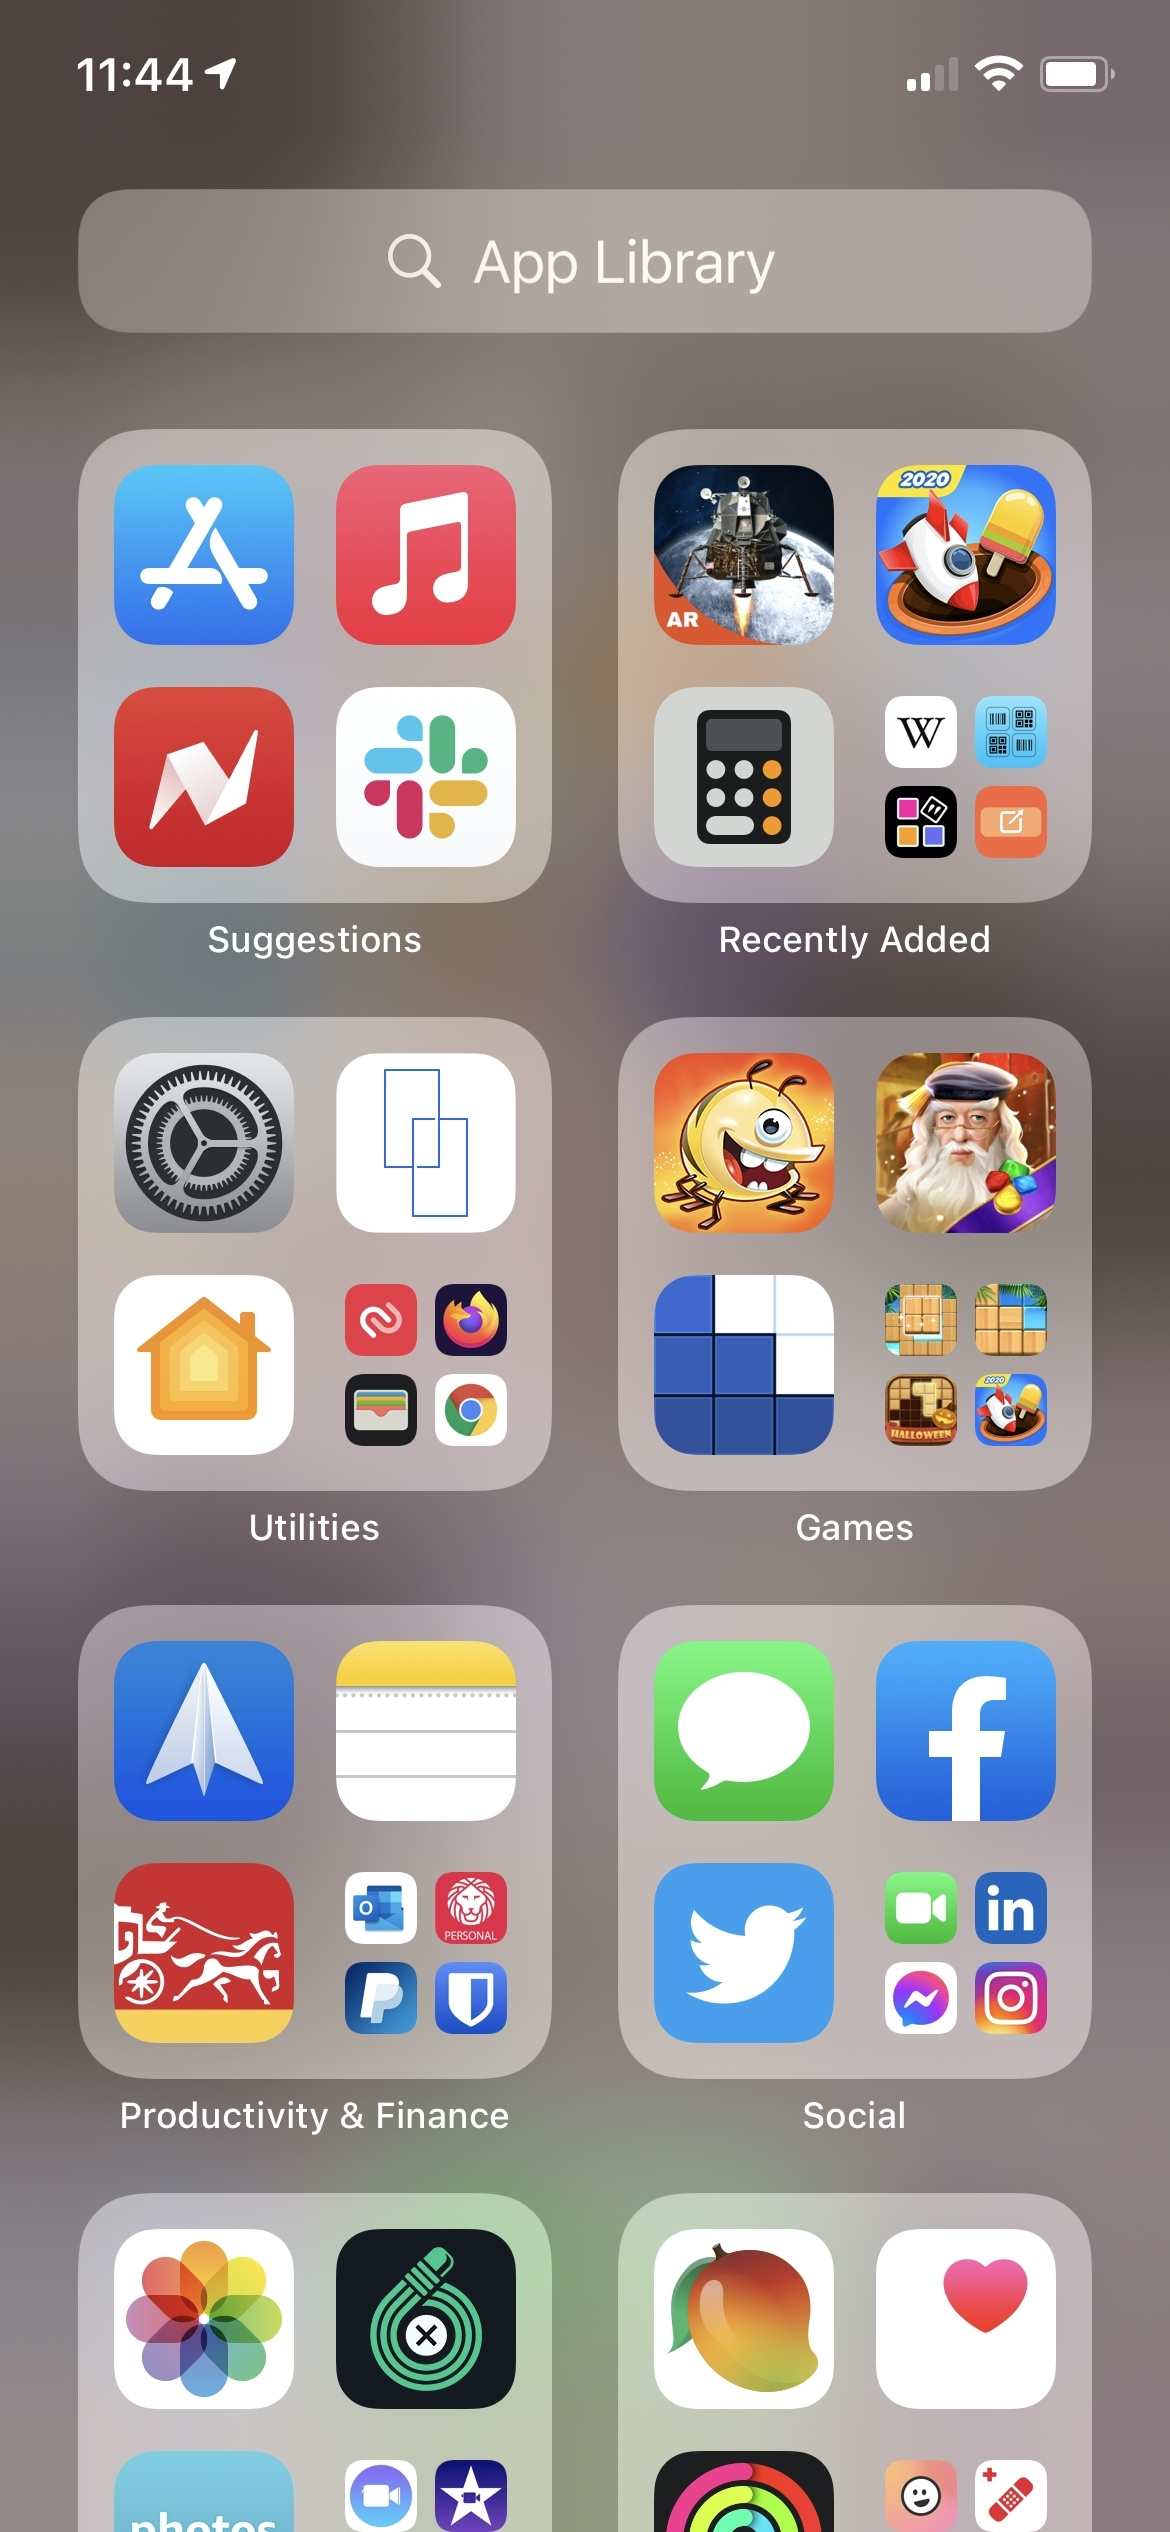 App Library on iPhone